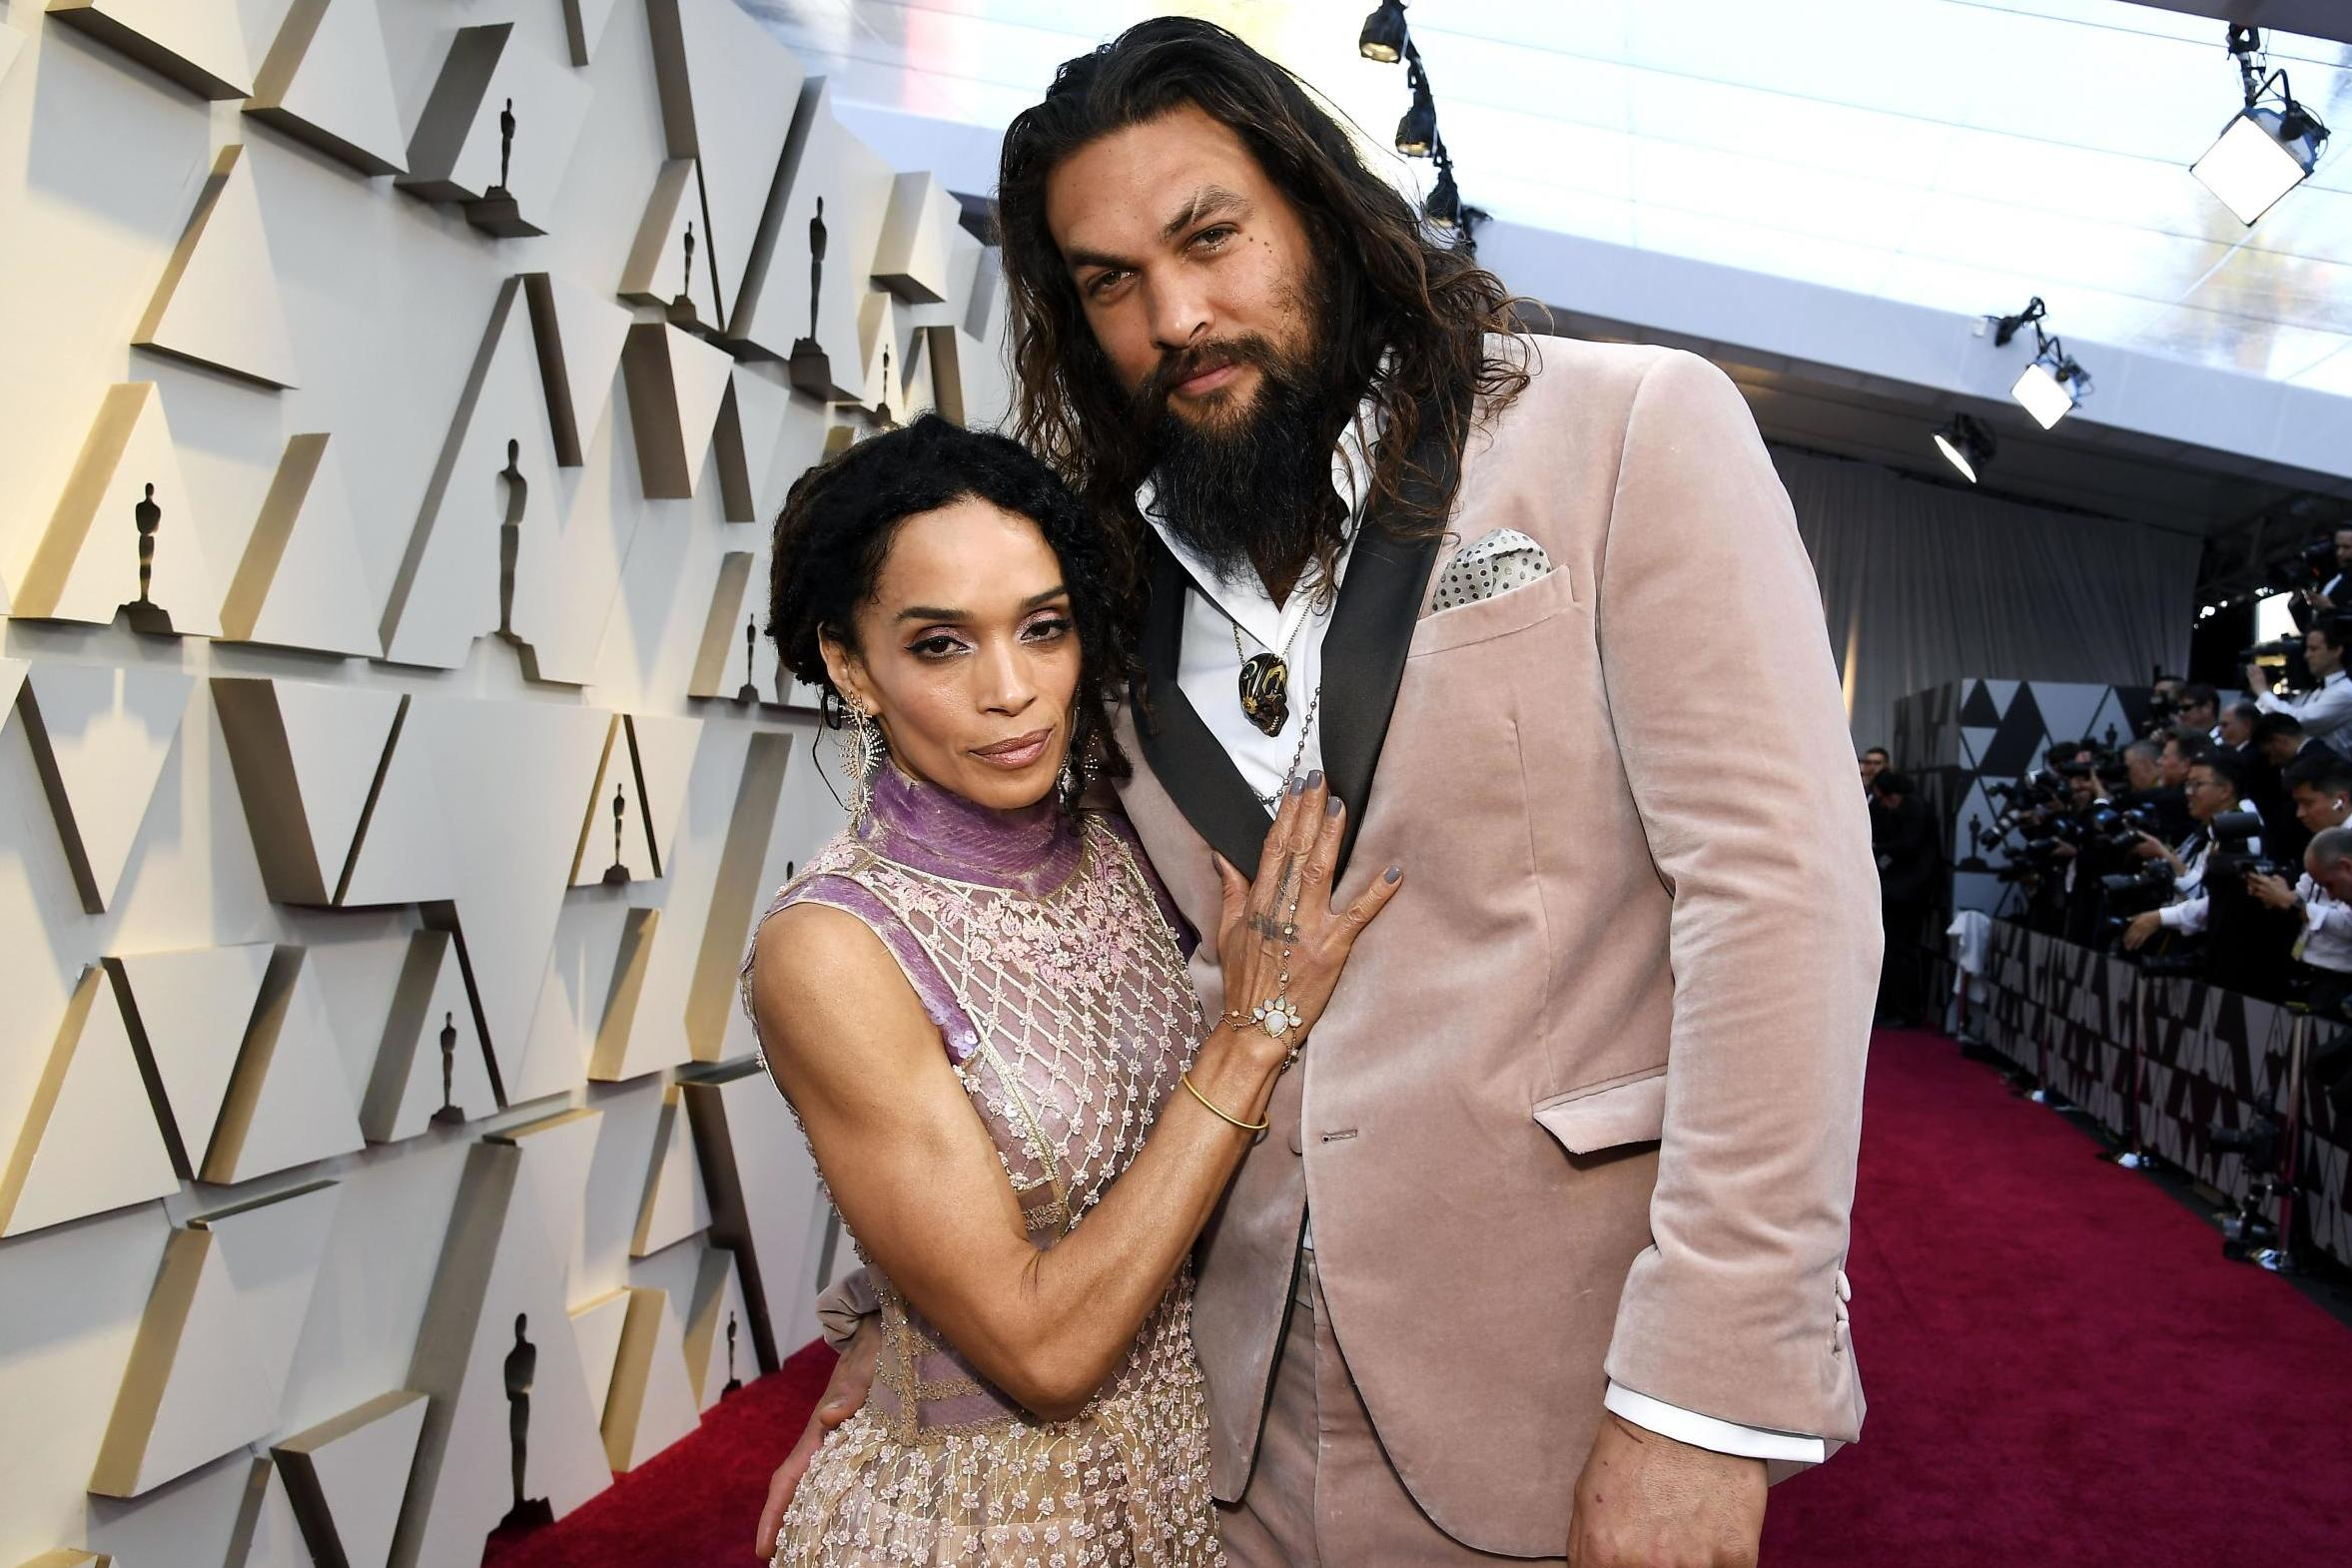 Fans defend Jason Momoa over body shaming comments